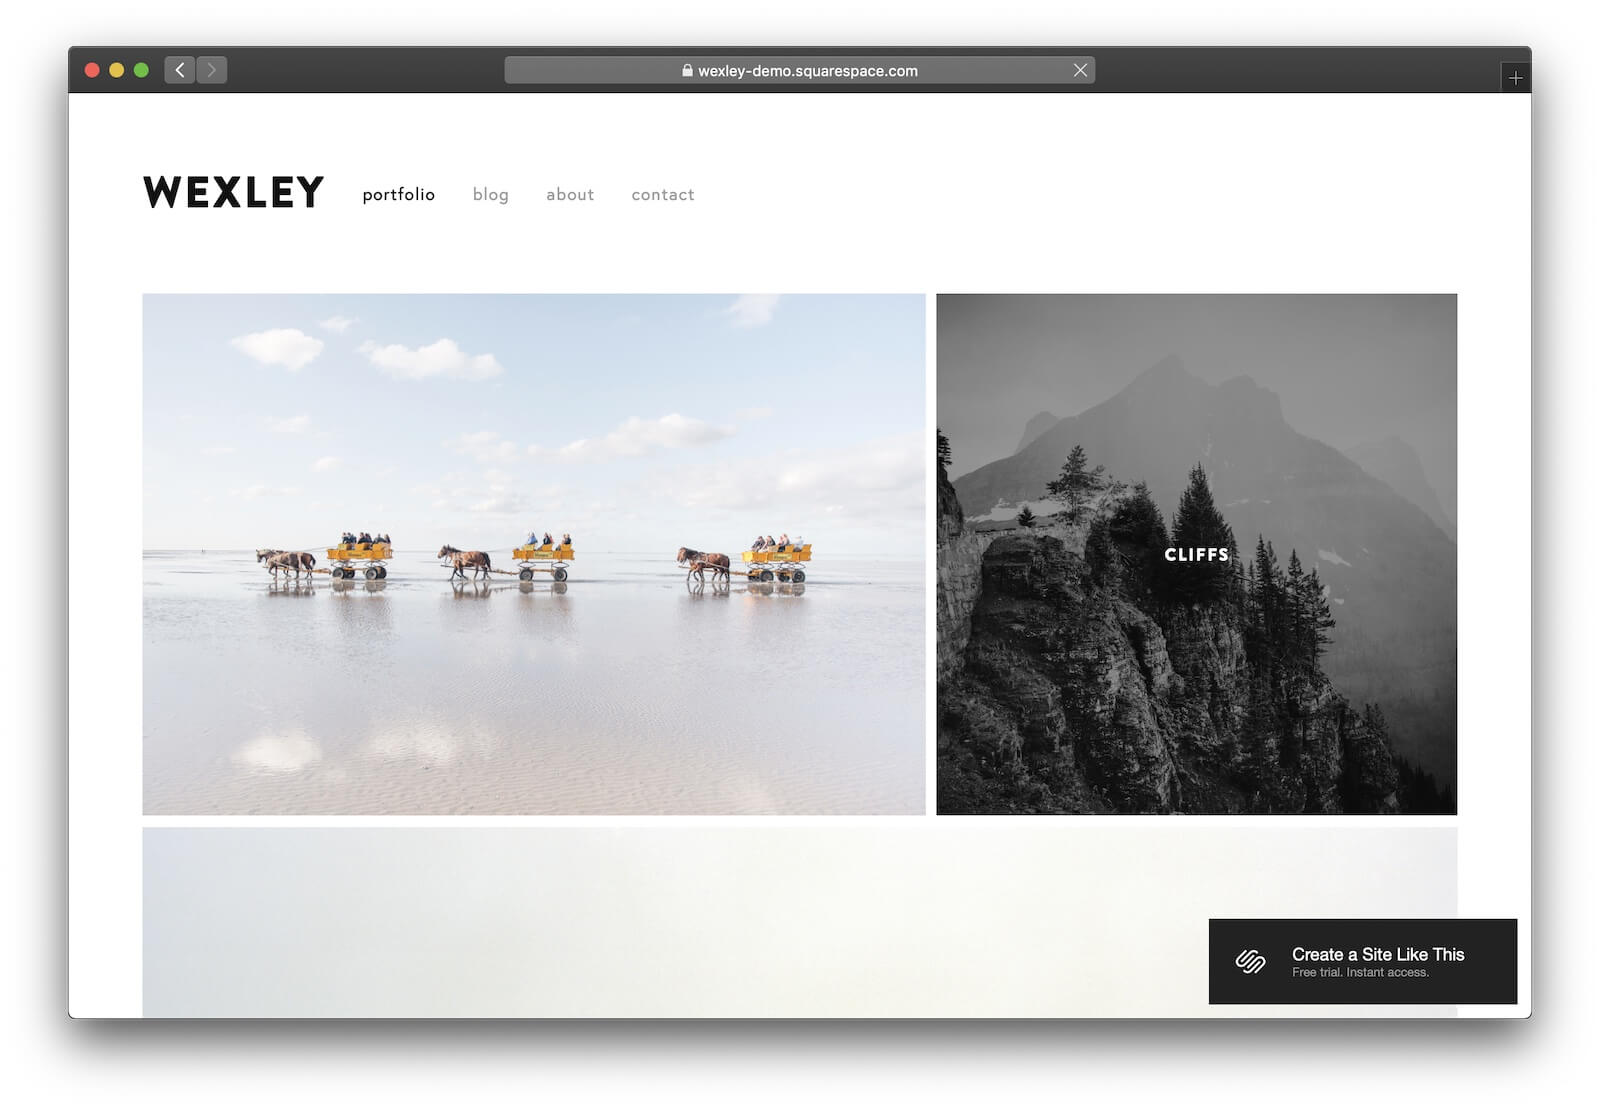 The Best Squarespace Template For Every Purpose - Pro With Best Squarespace Template